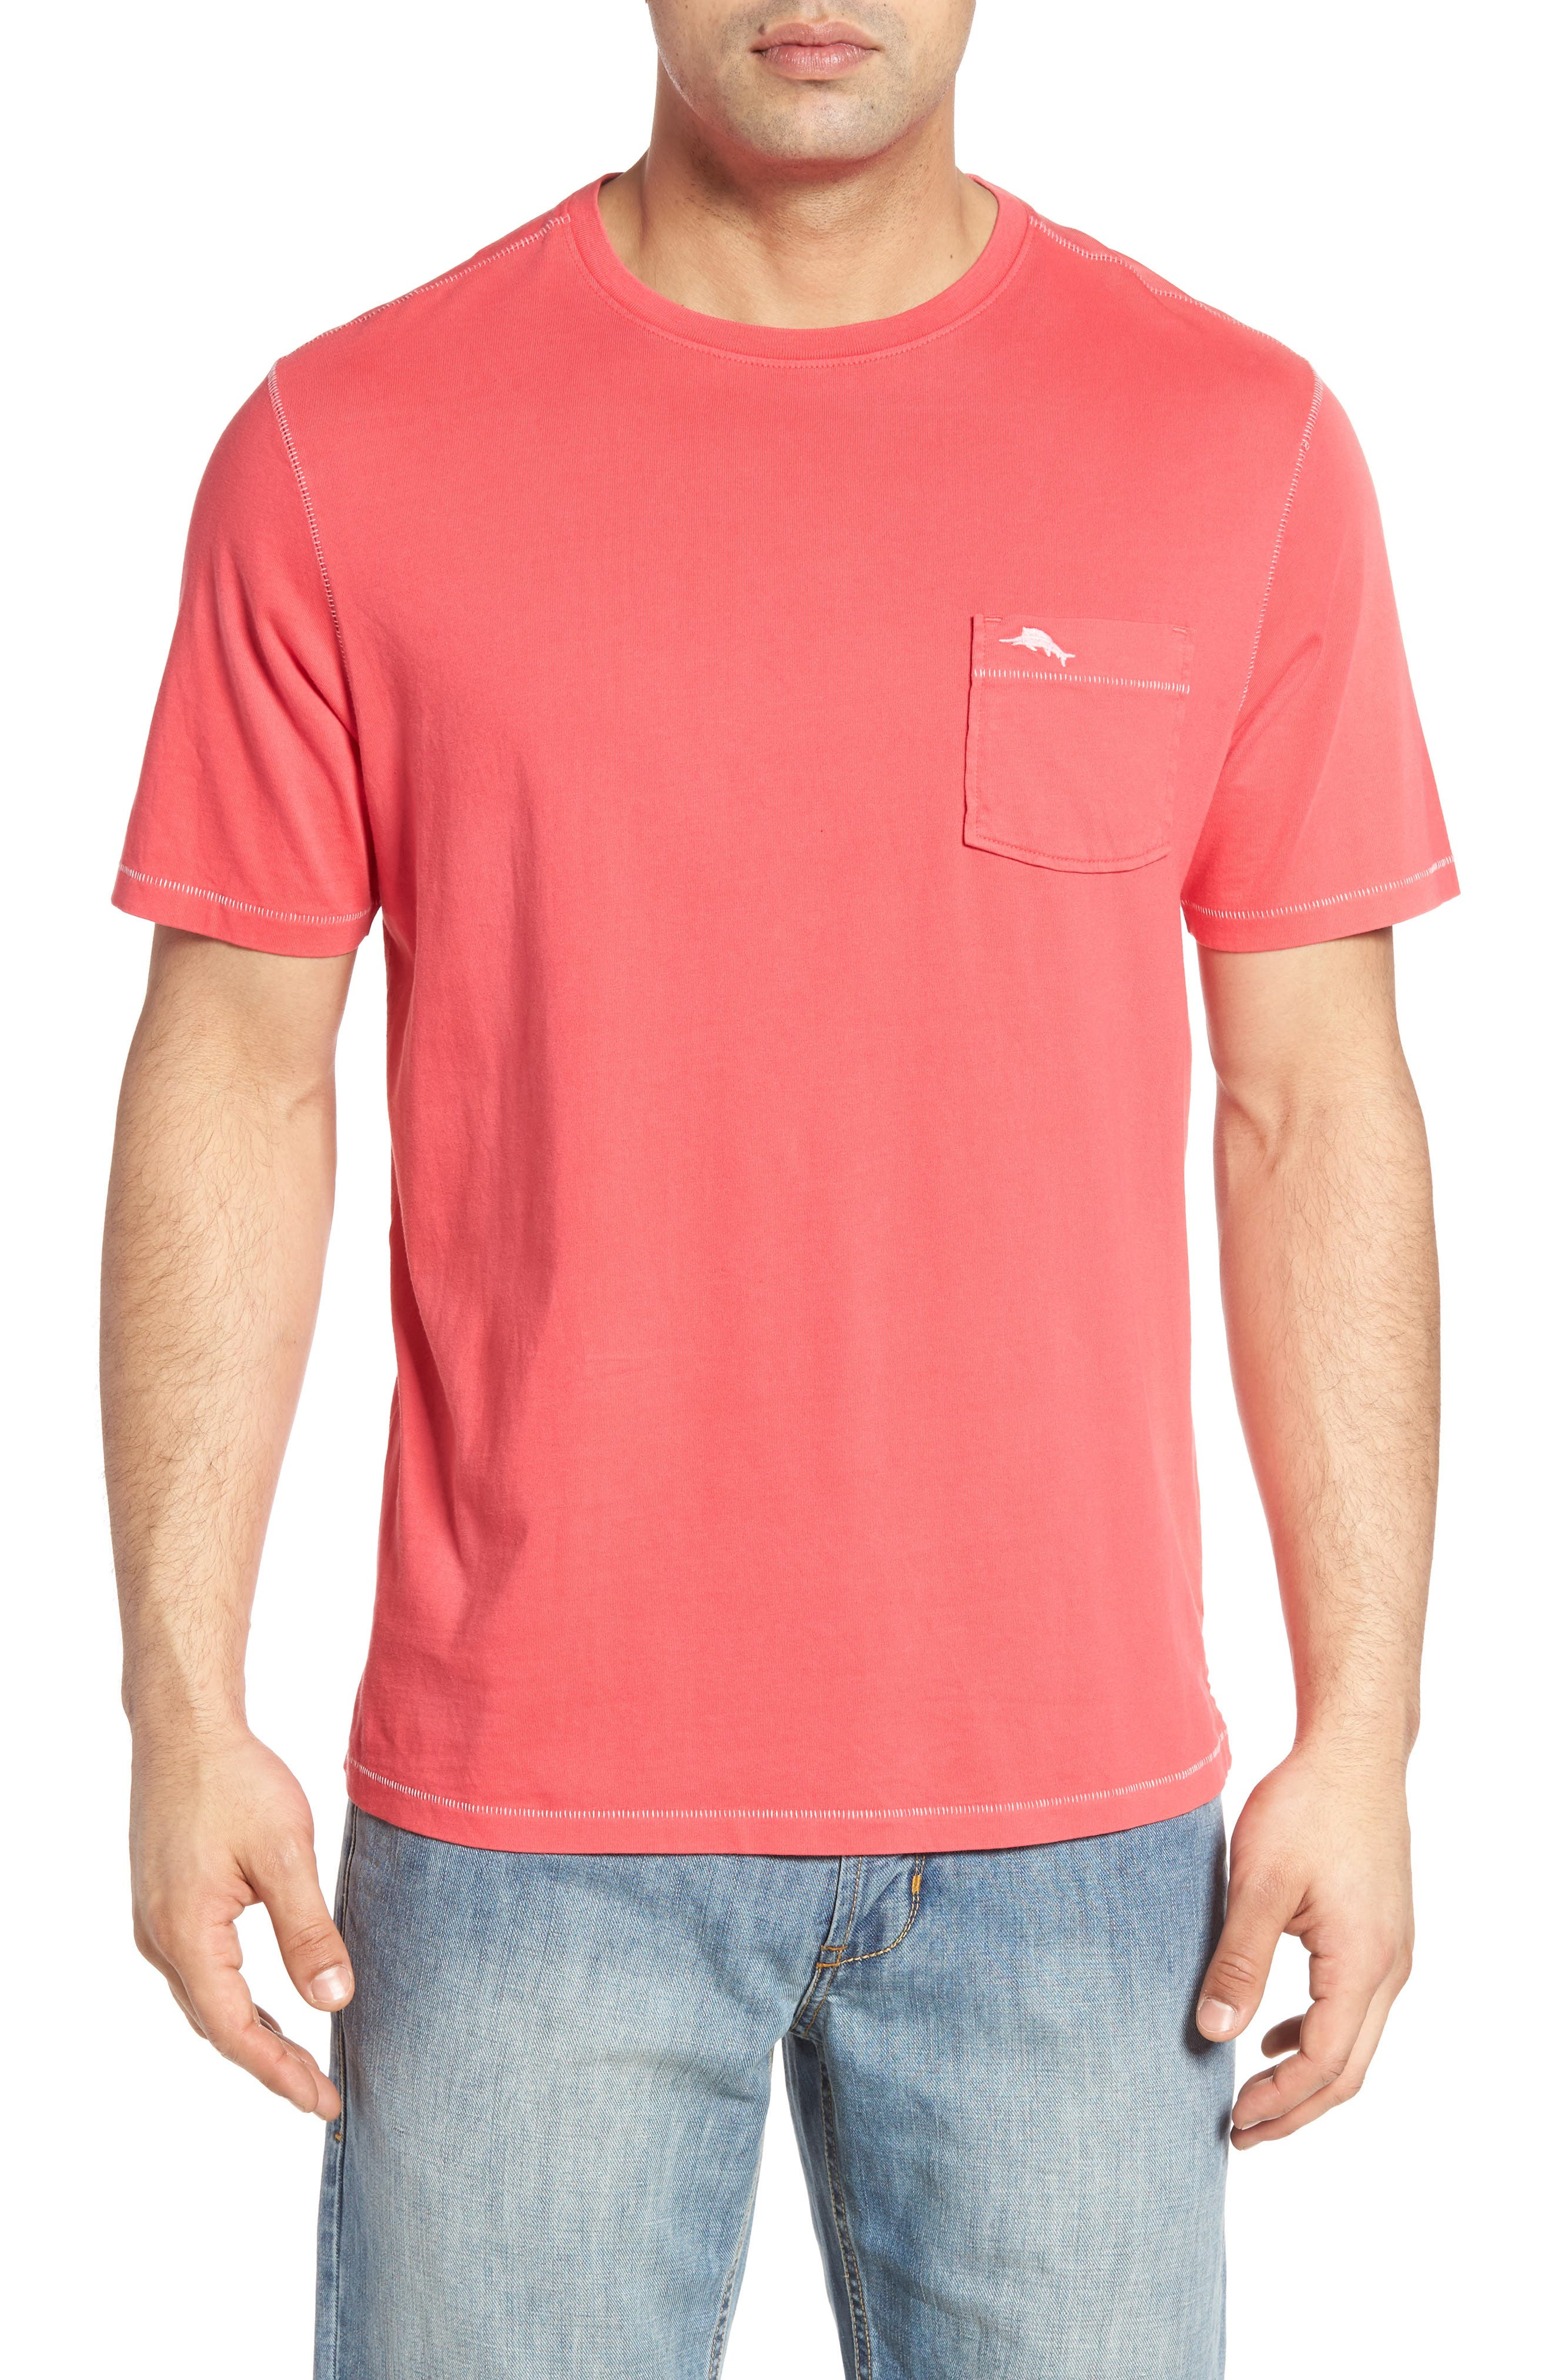 Tommy Bahama 'New Bahama Reef' Island Modern Fit Pima Cotton Pocket T-Shirt